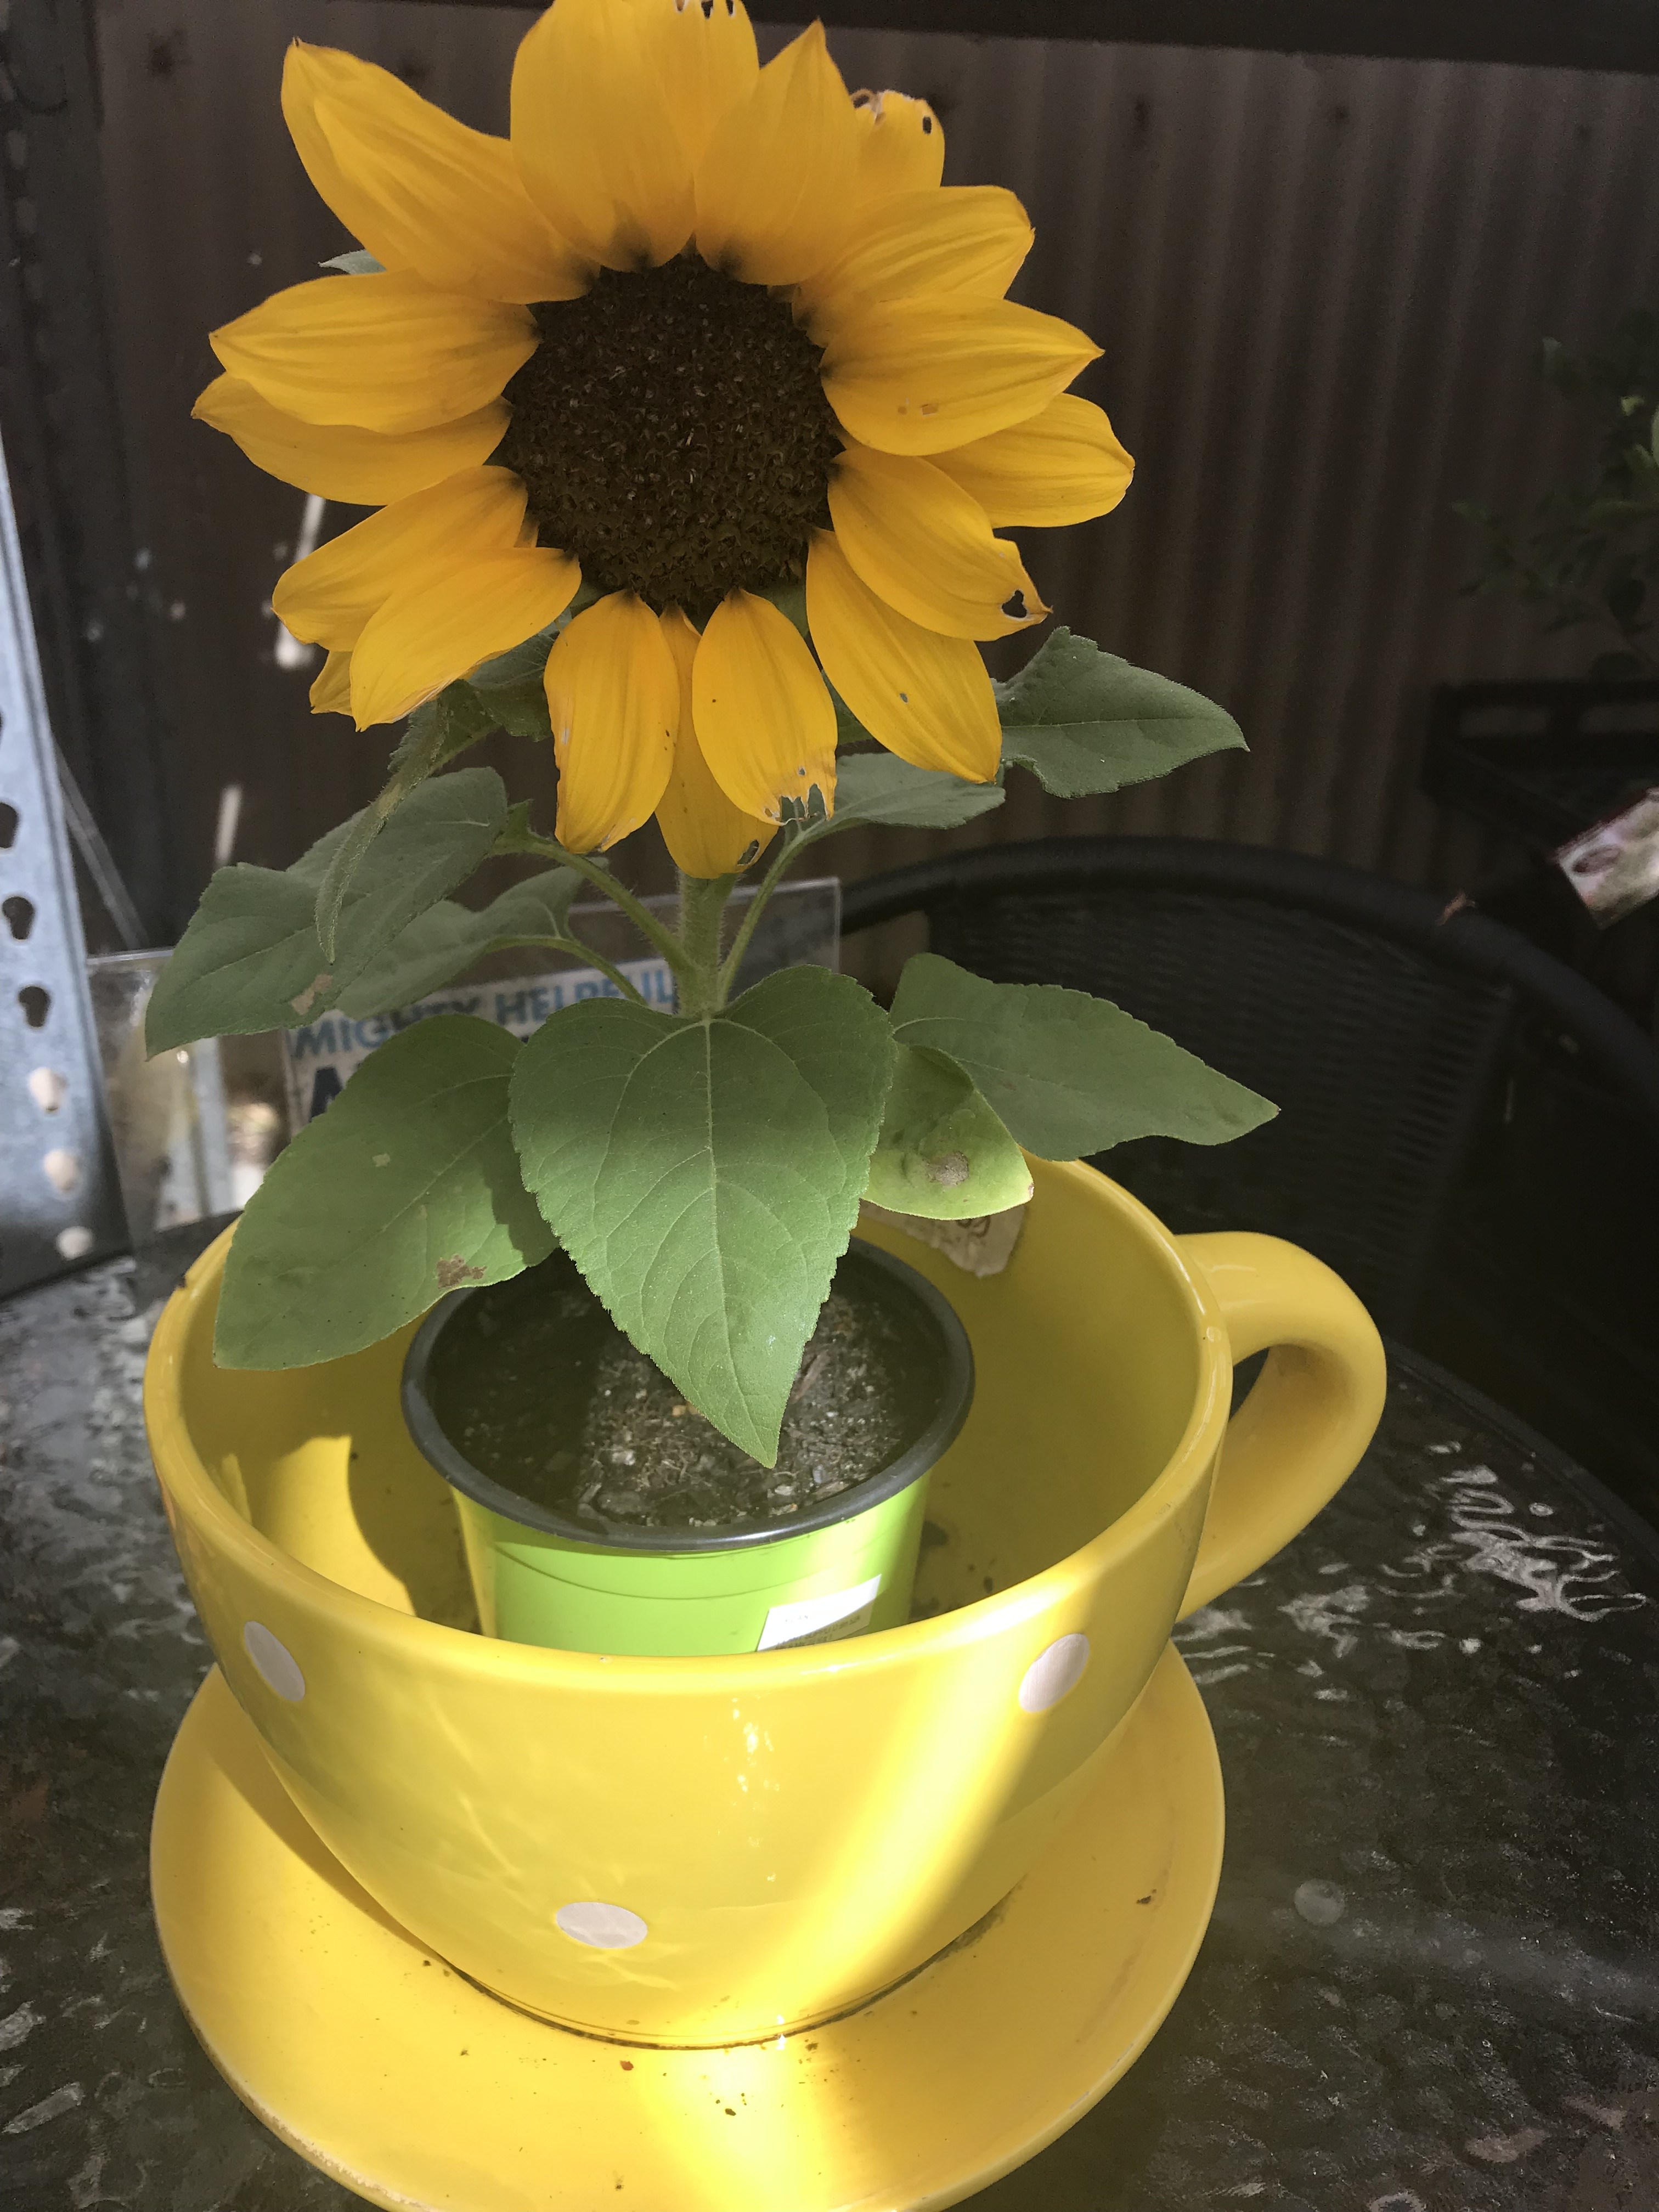 Sunflower in yellow pot